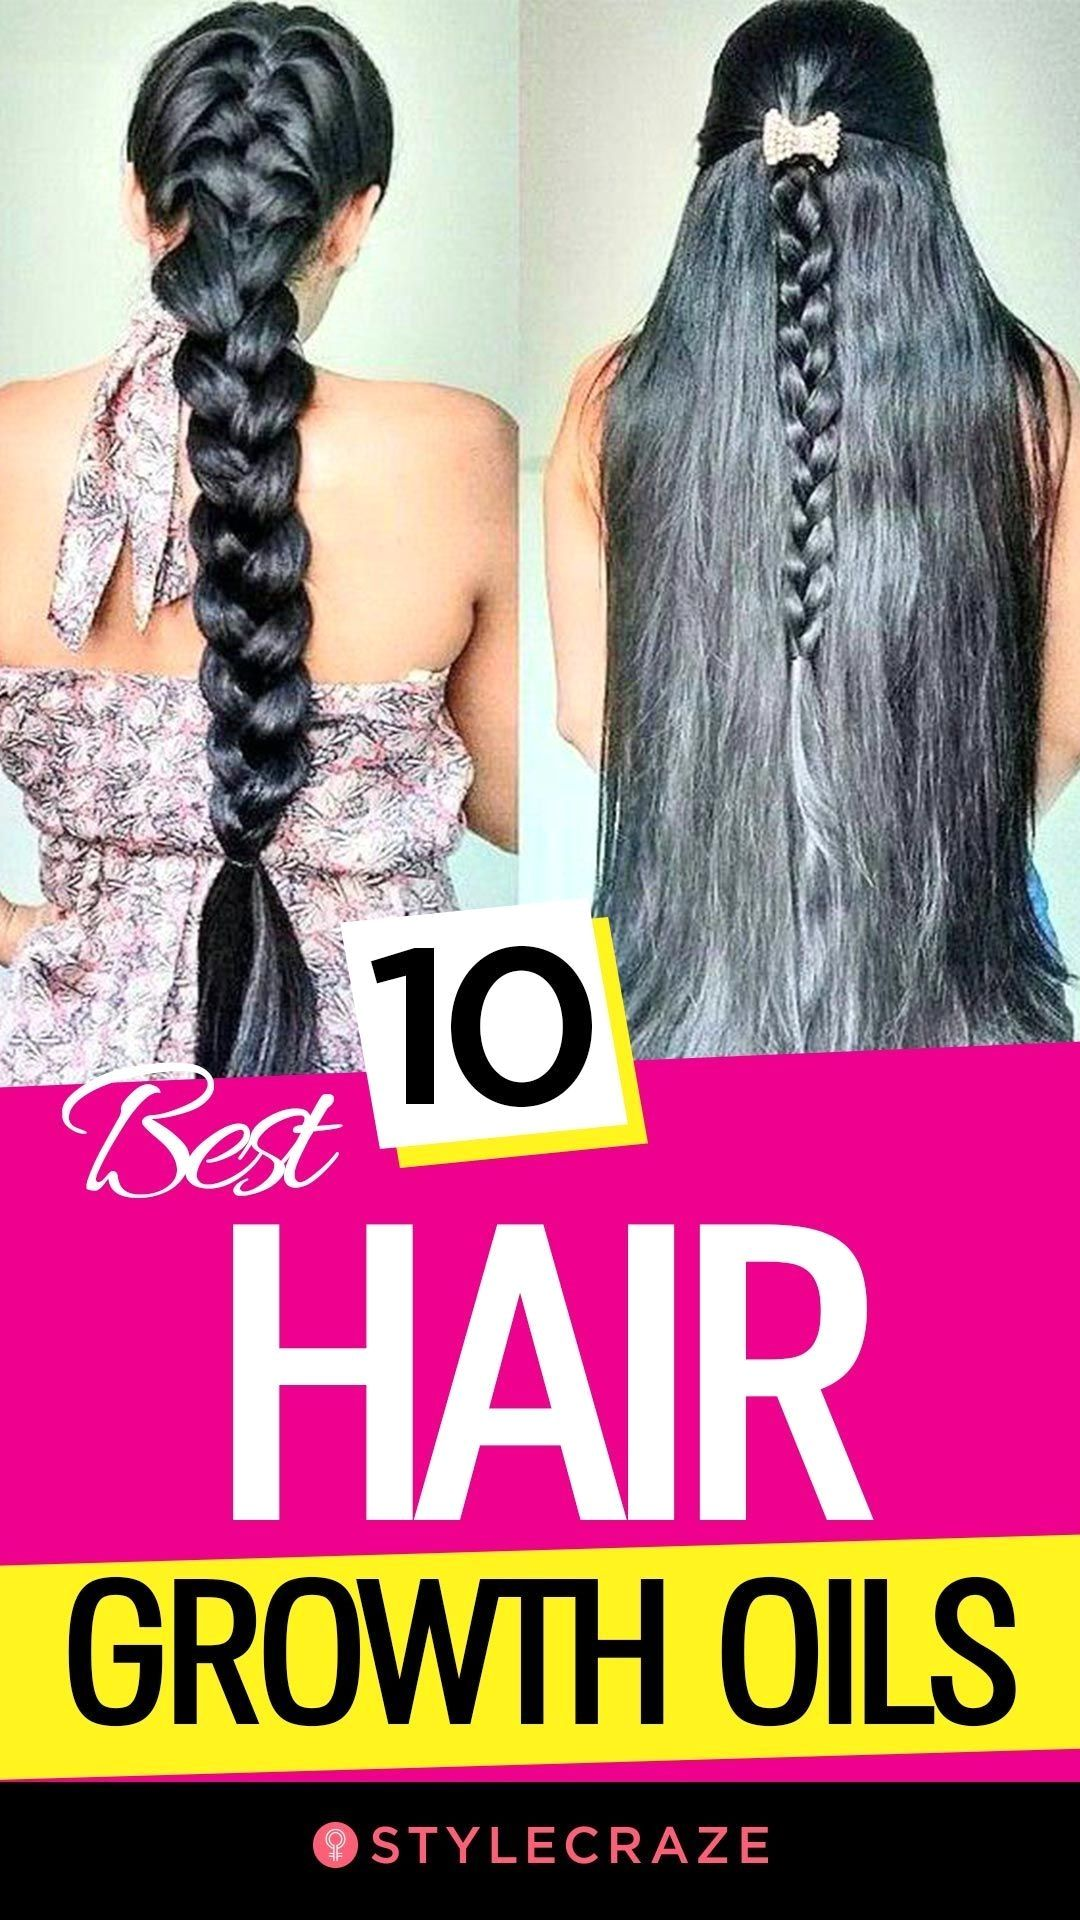 How To Grow Hair Faster Reddit - Hairstyles Ideas 2020